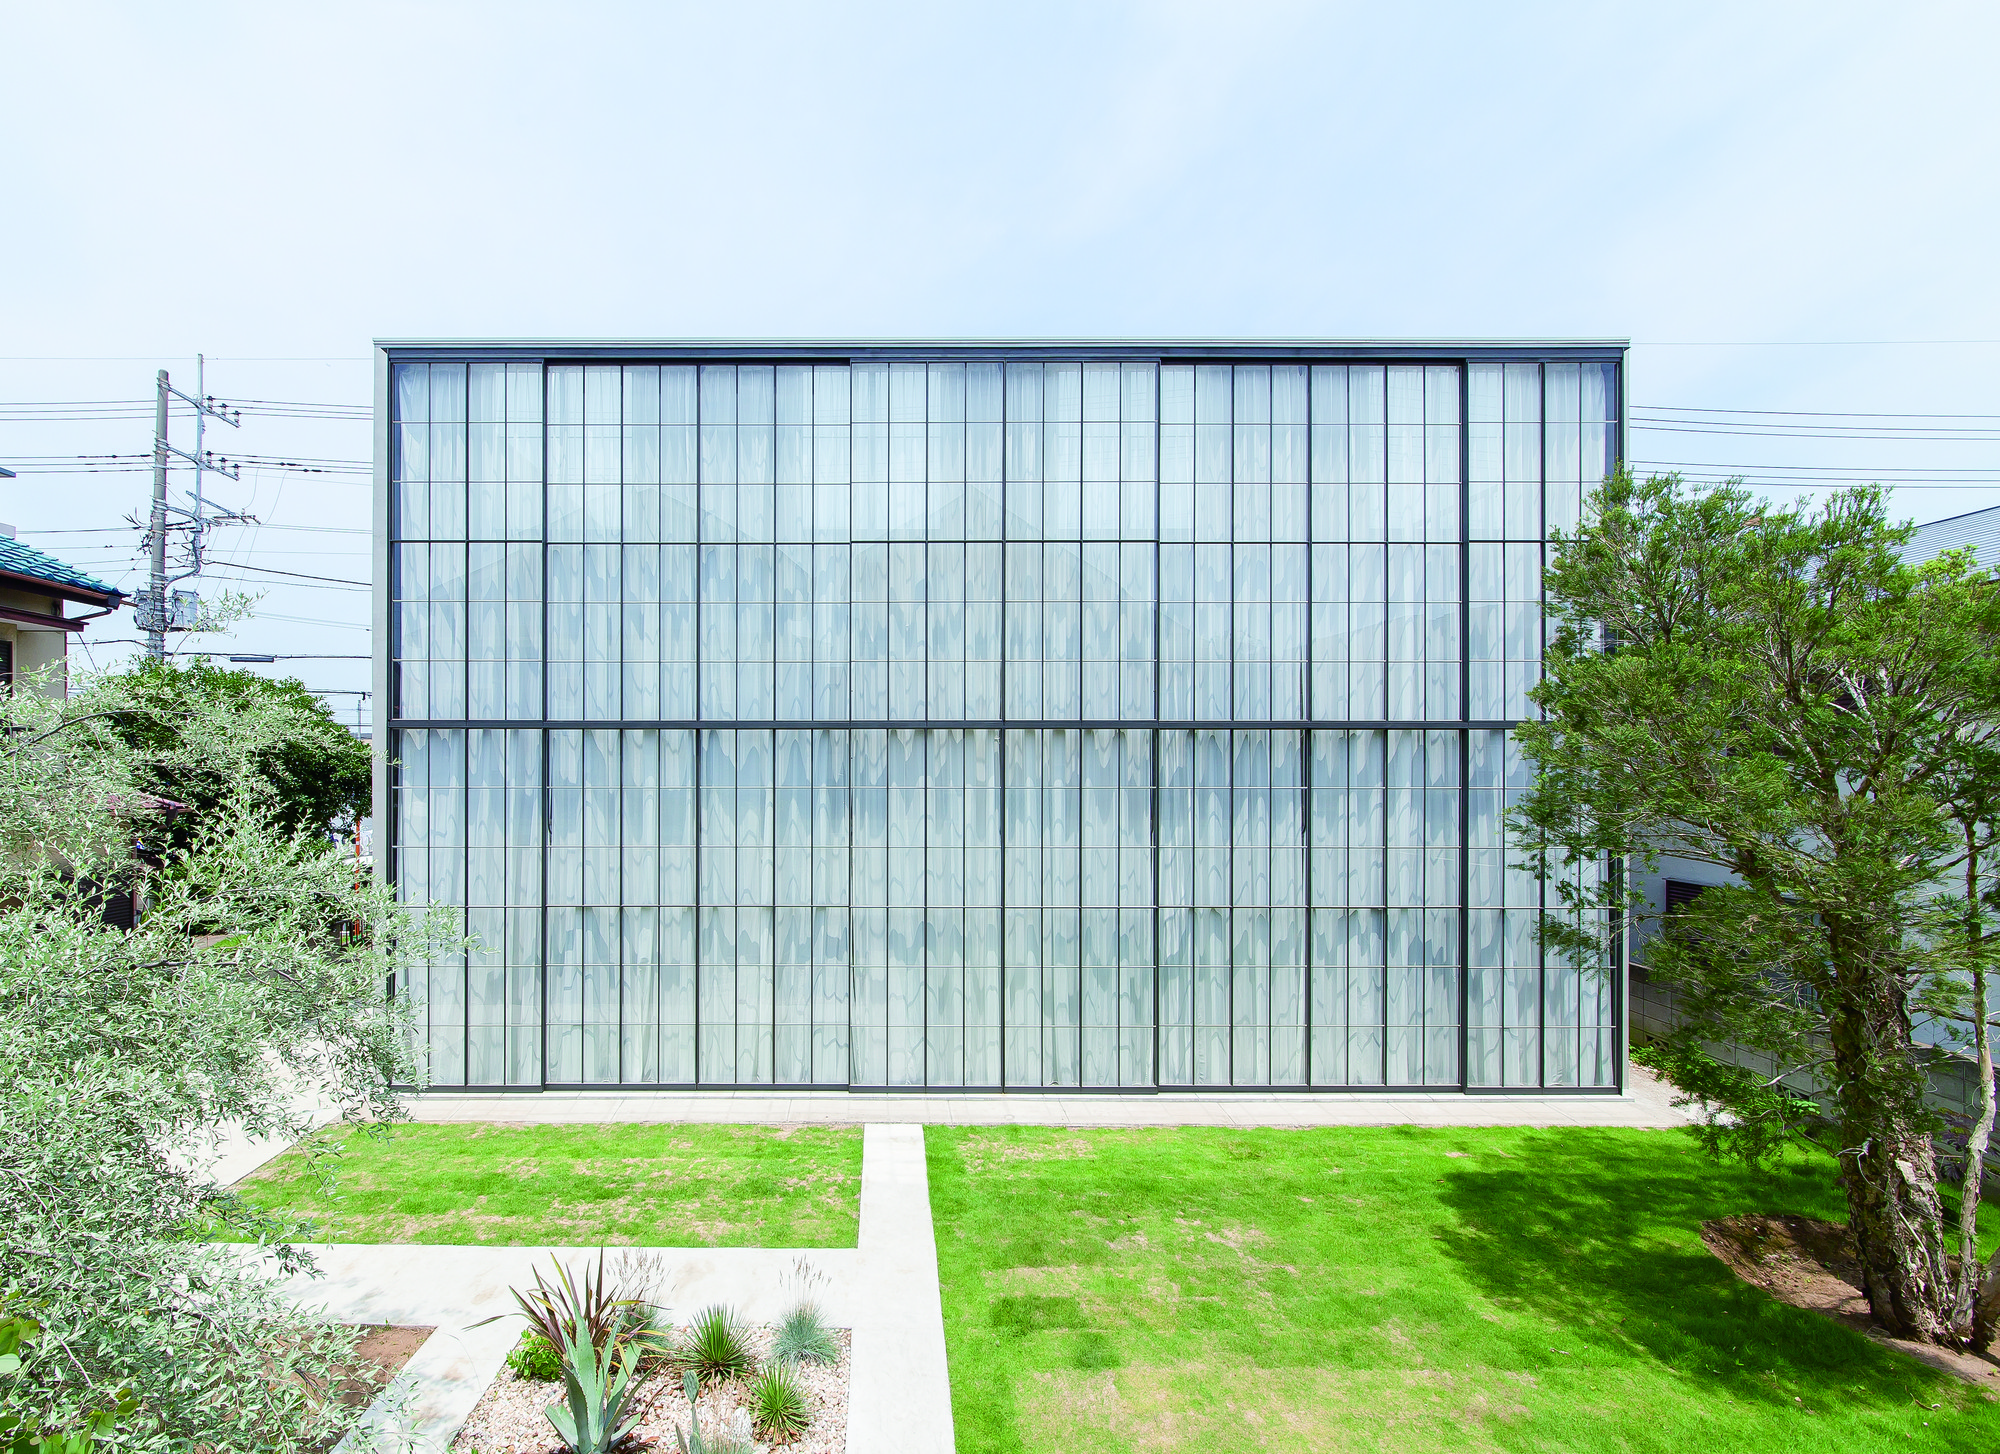 2014 AR Emerging Architecture Awards Winners Announced